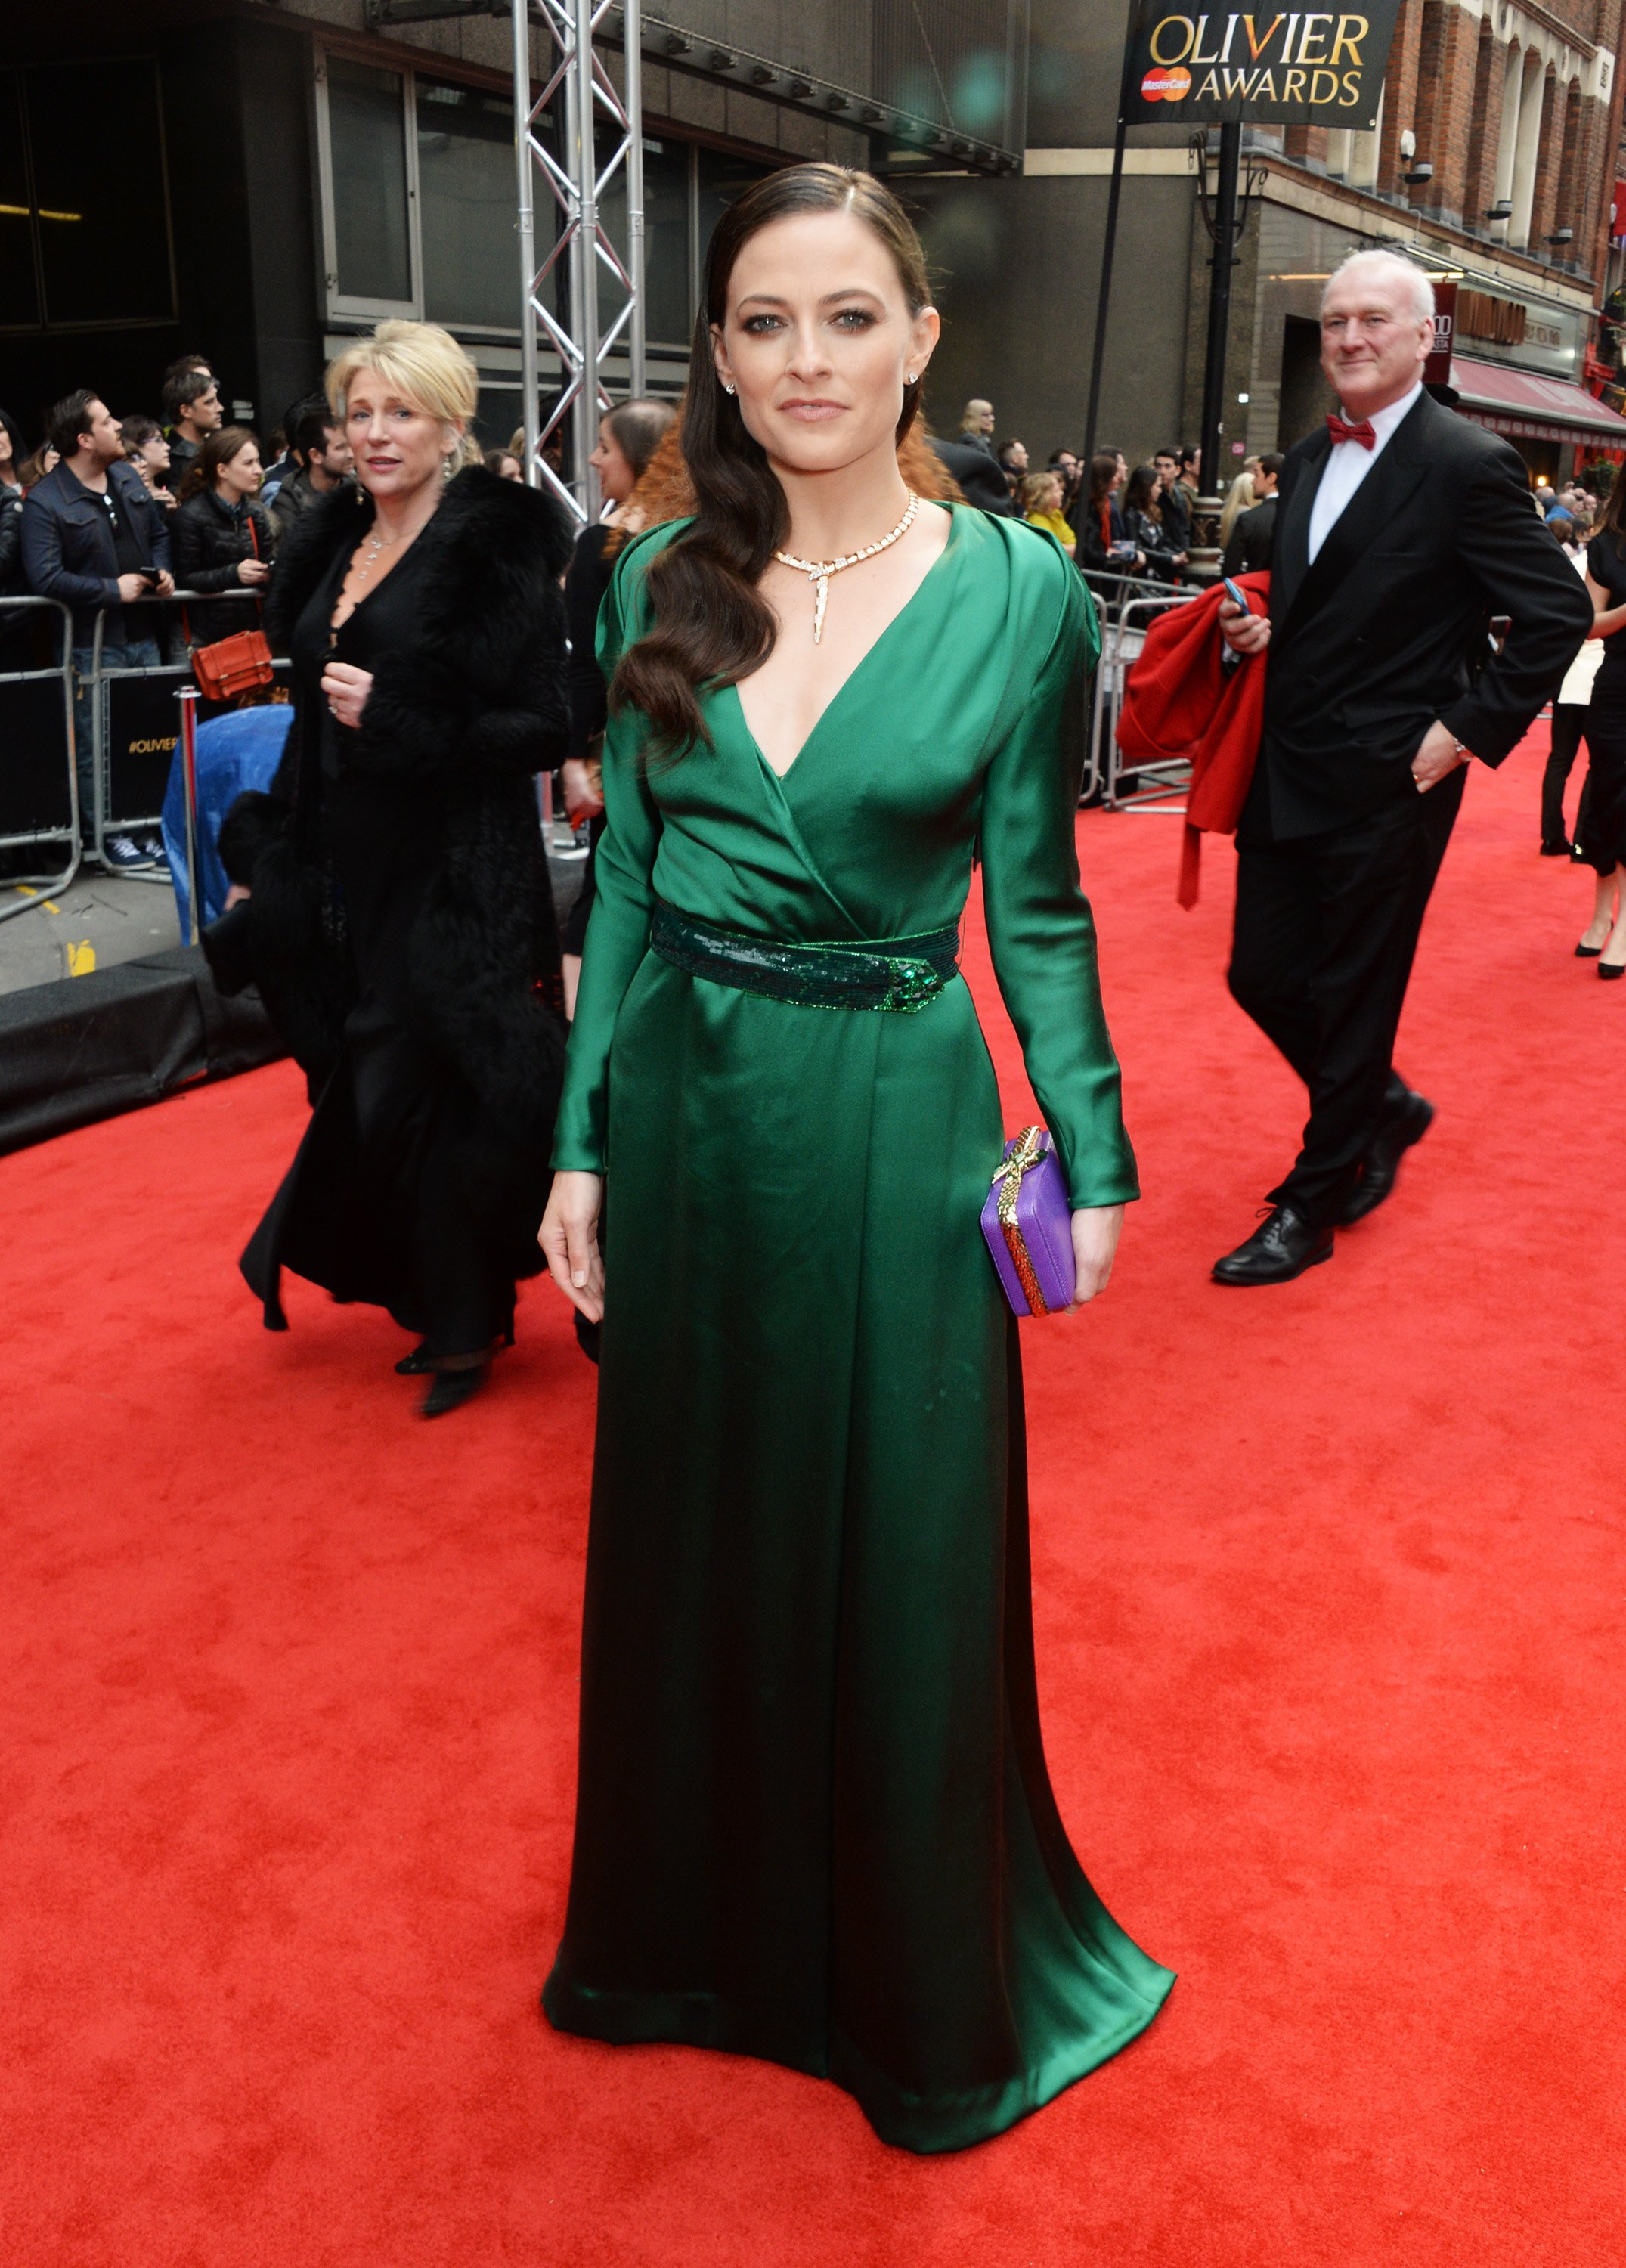 Lara Pulver arrives at The Olivier Awards with Mastercard at The Royal Opera House on April 3, 2016 in London, England   Photo: GettyImages